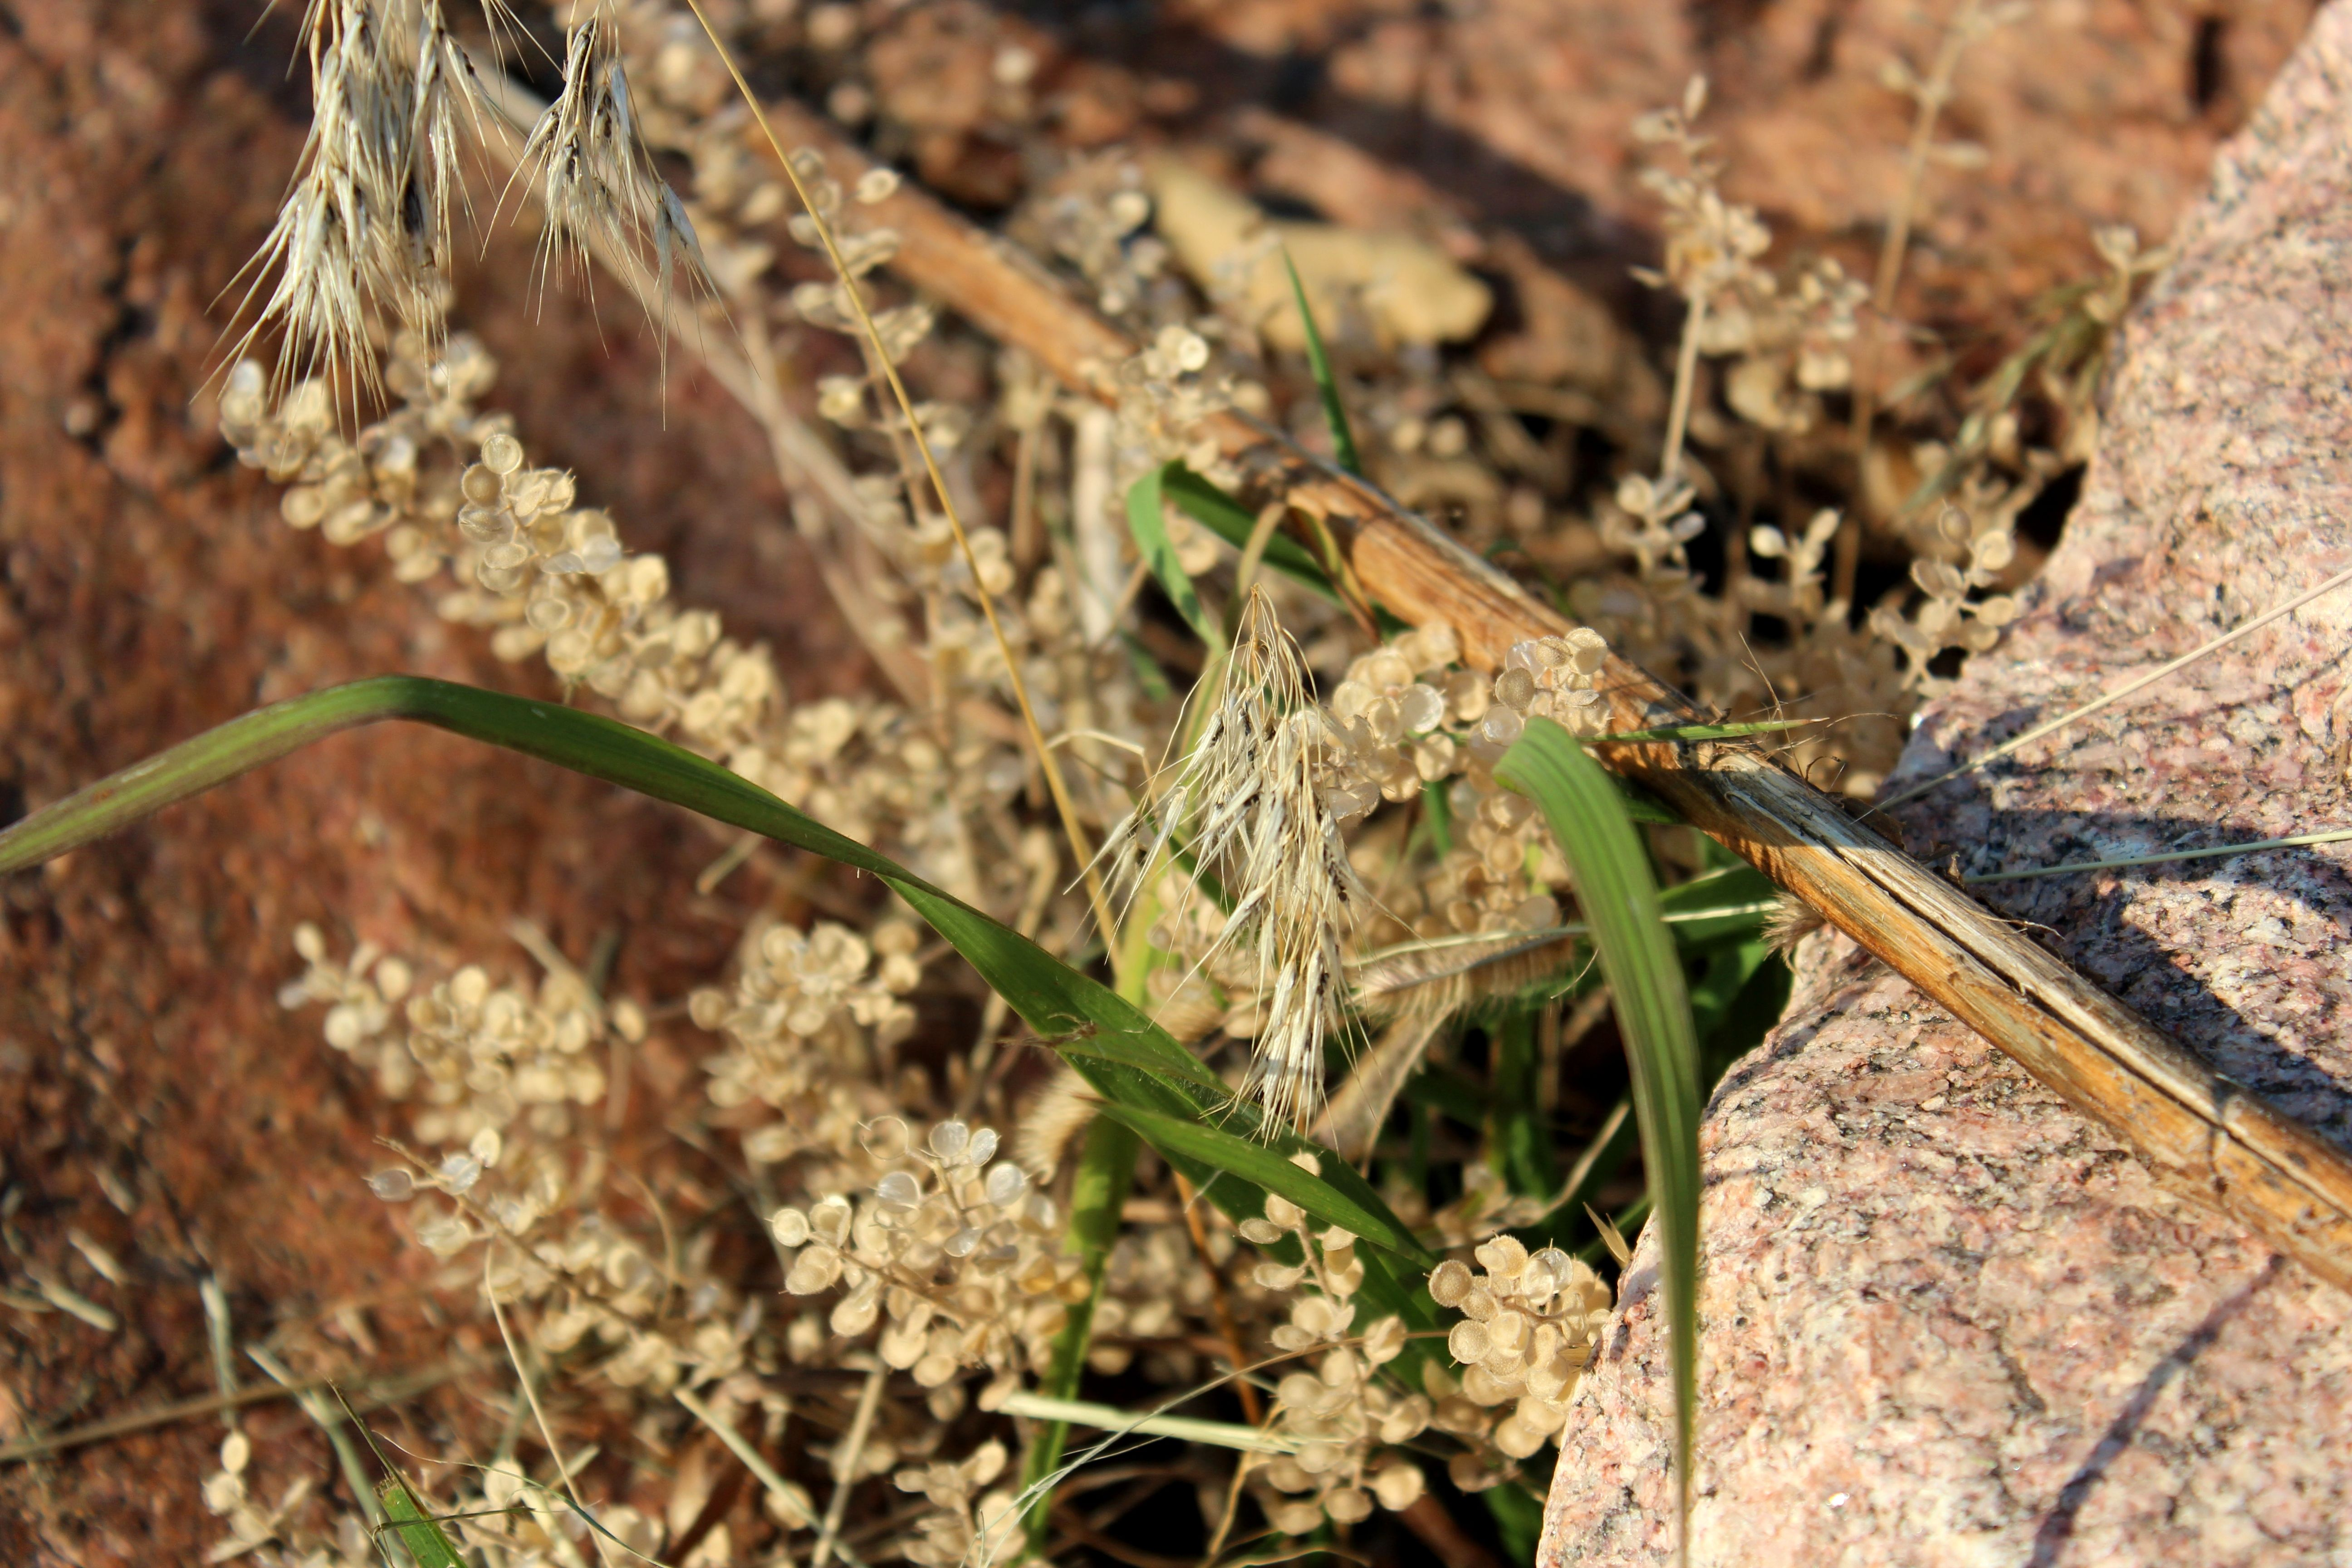 really cool combo of wheat looking plant, twig and leafy grass ...